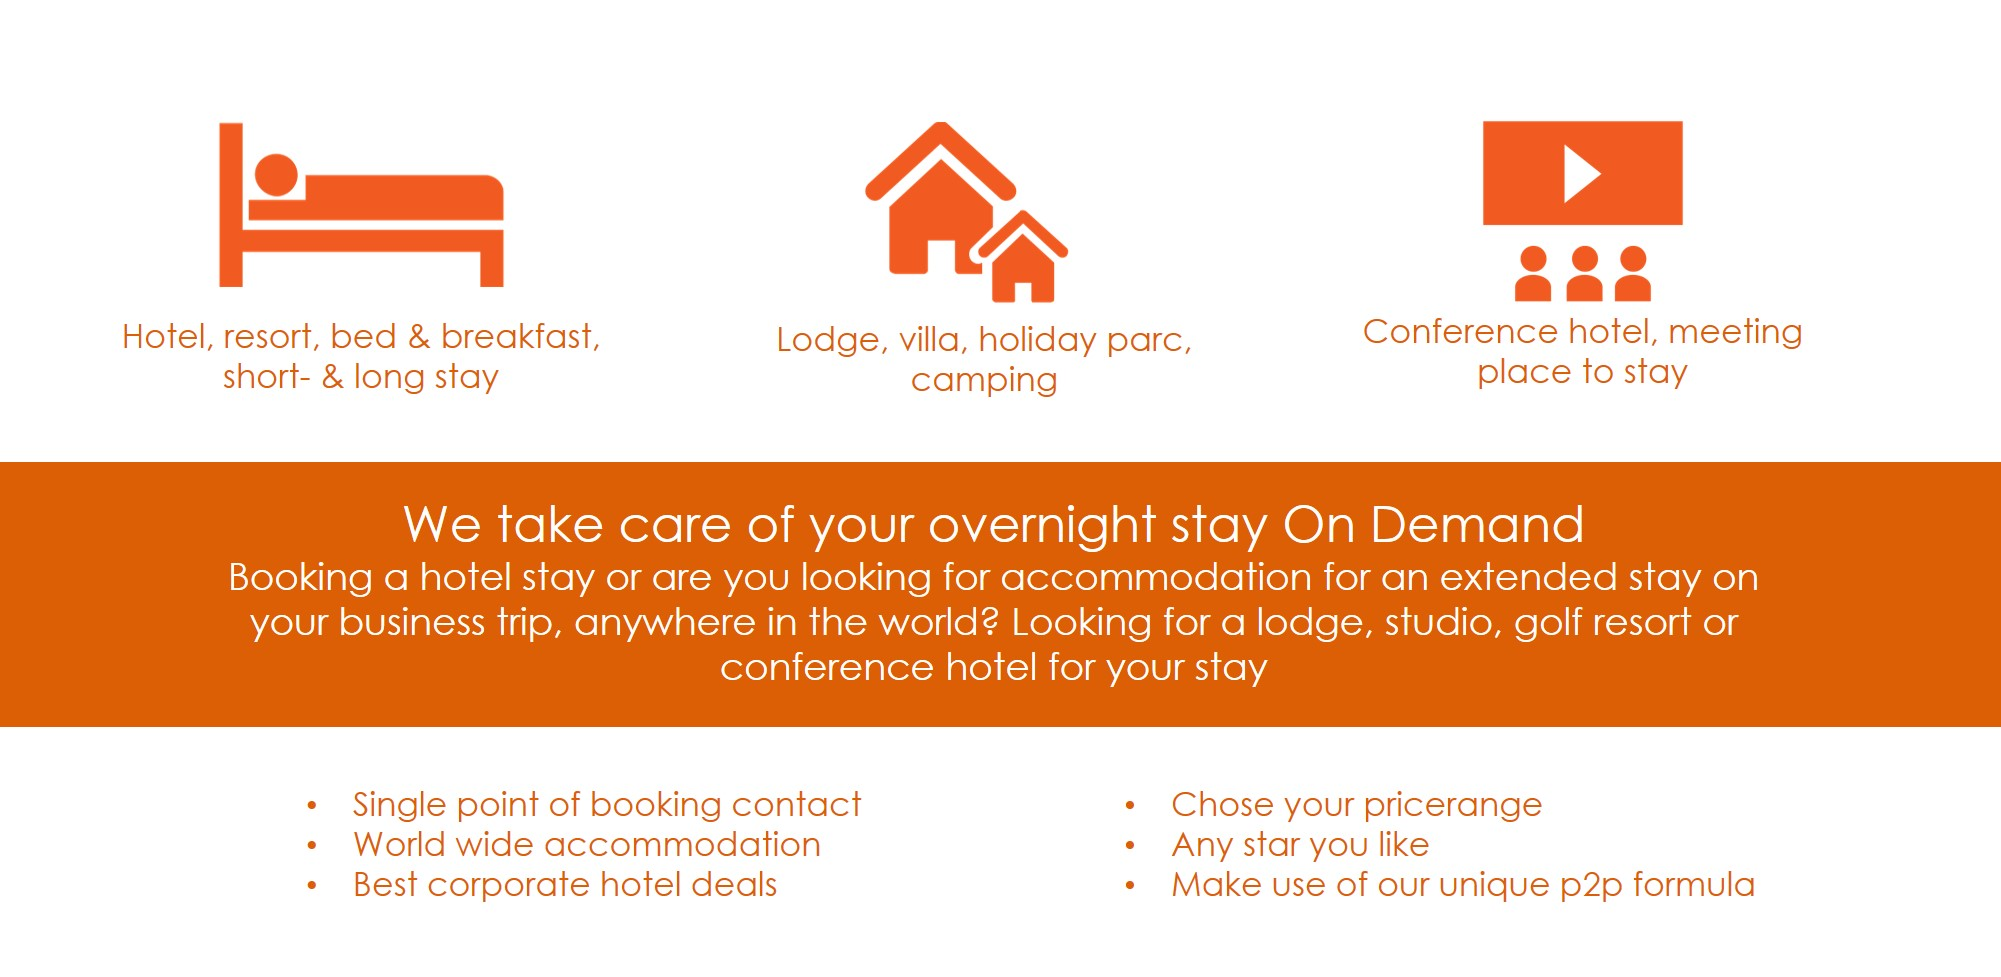 Book an accommodation yourself or let us take care of your overnight stay Booking a hotel stay or are you looking for accommodation for an extended stay on your business trip, anywhere in the world? Looking for a lodge, studio, golf resort or conference hotel for your stay in the Netherlands or abroad? Or are you looking for a meeting room or conference facilities with accommodation? The professionals at Event1001-bookings can search, book and pay for the right accommodation and any additional services you may require. There is a world open to you! Mail or contact us, we are happy to help you.